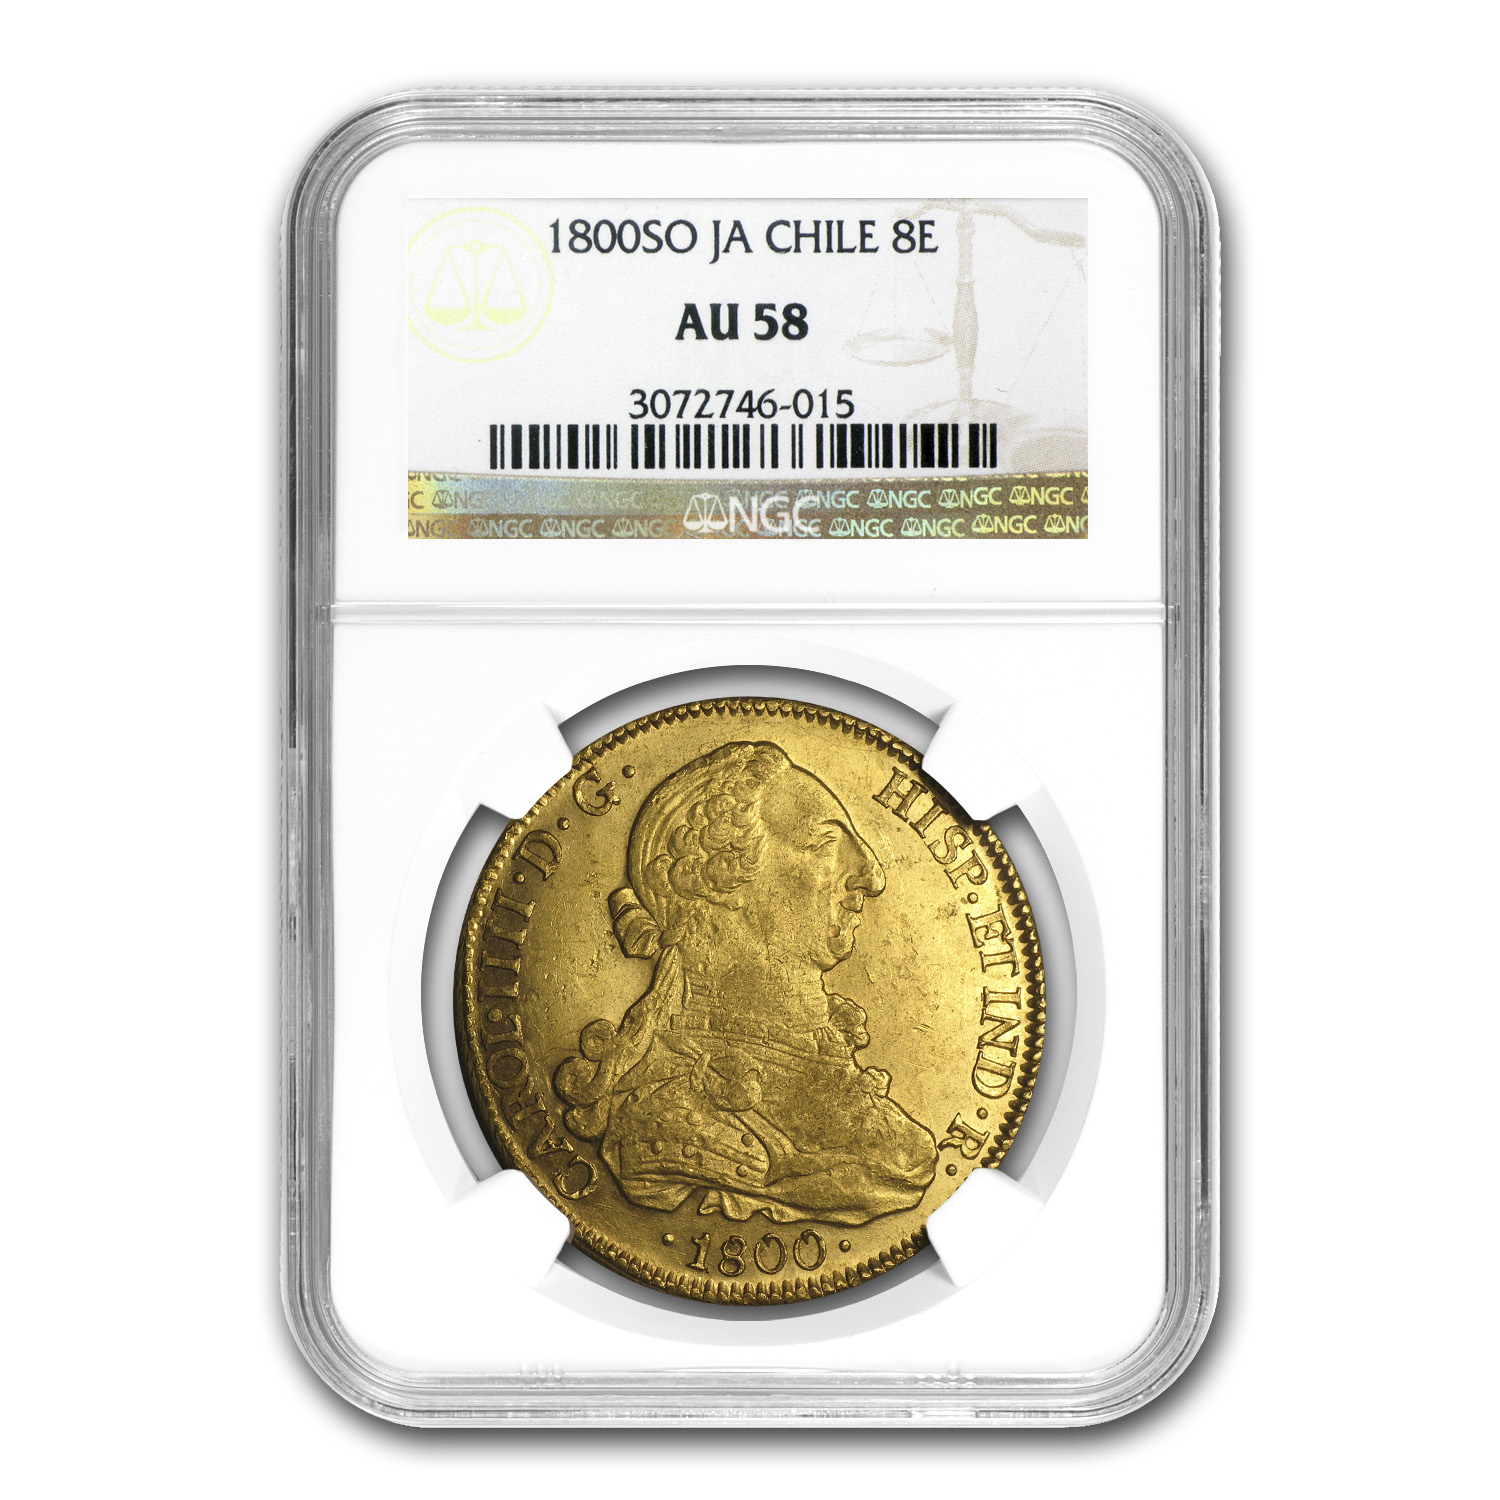 Chile 1800-SO JA Gold 8 Escudos Charles IIII NGC AU-58